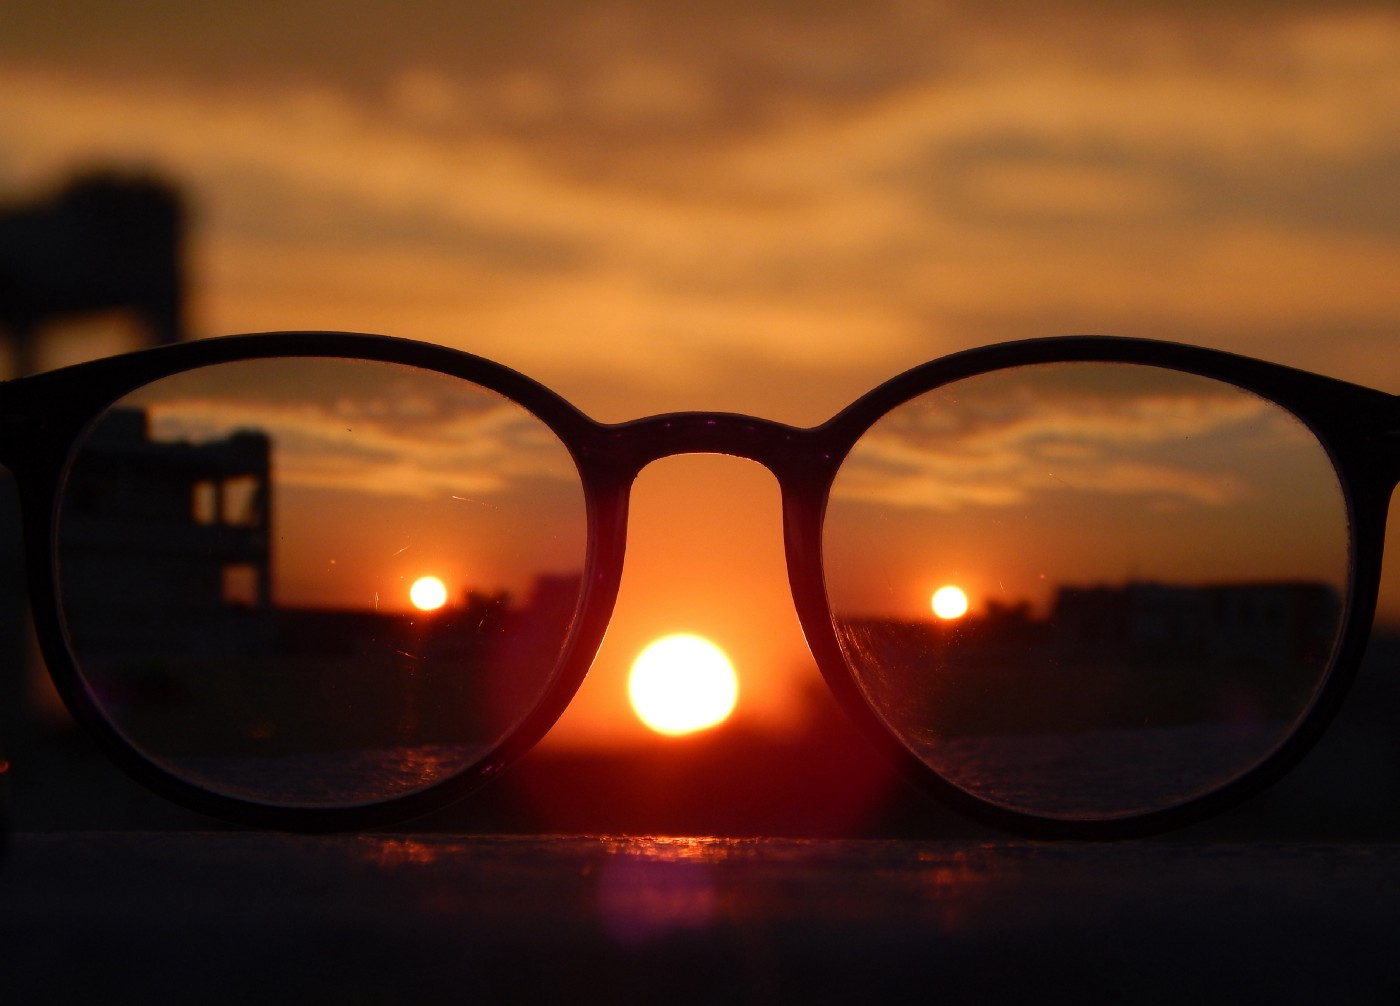 Glasses showing three suns in the sky